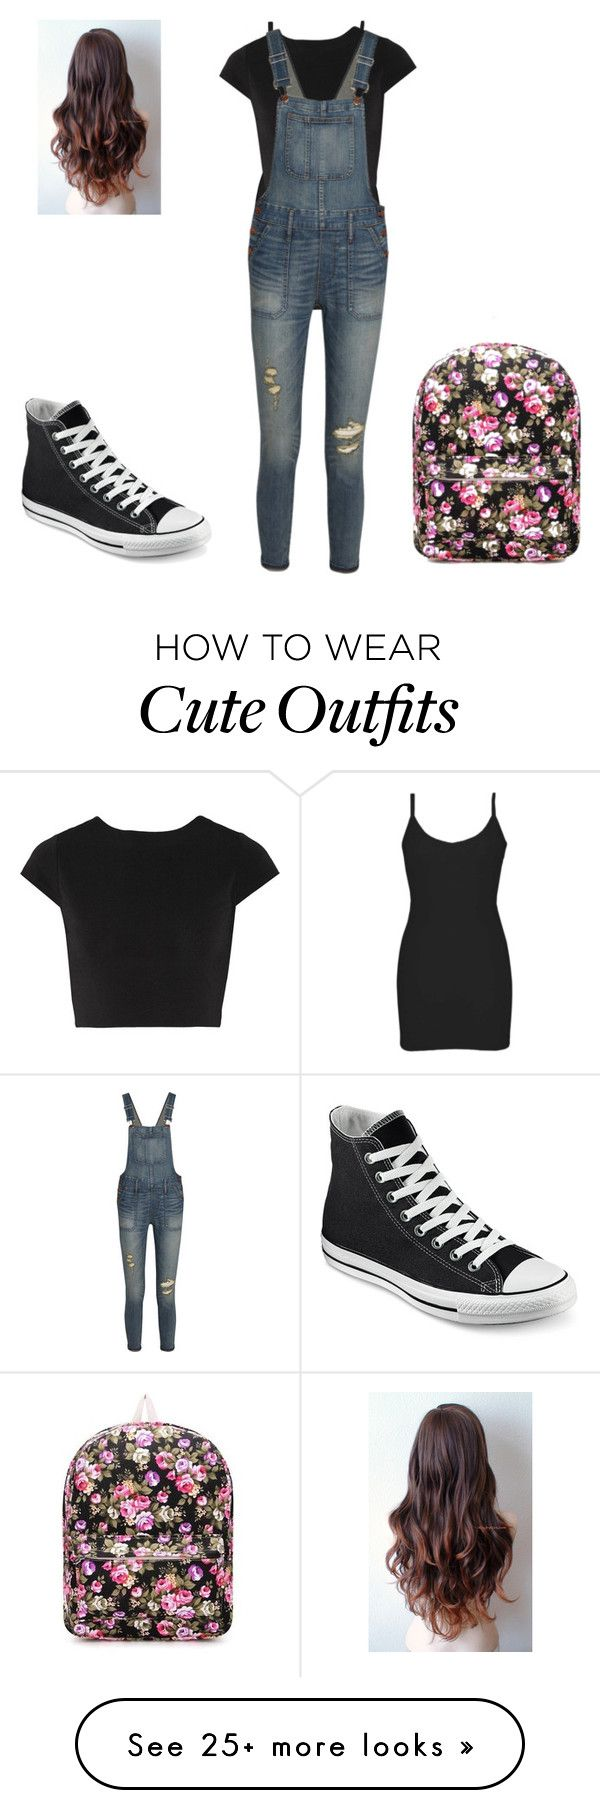 """My school outfit"" by kayleighfawn on Polyvore featuring BKE core, Alice + Olivia, Madewell and Converse"